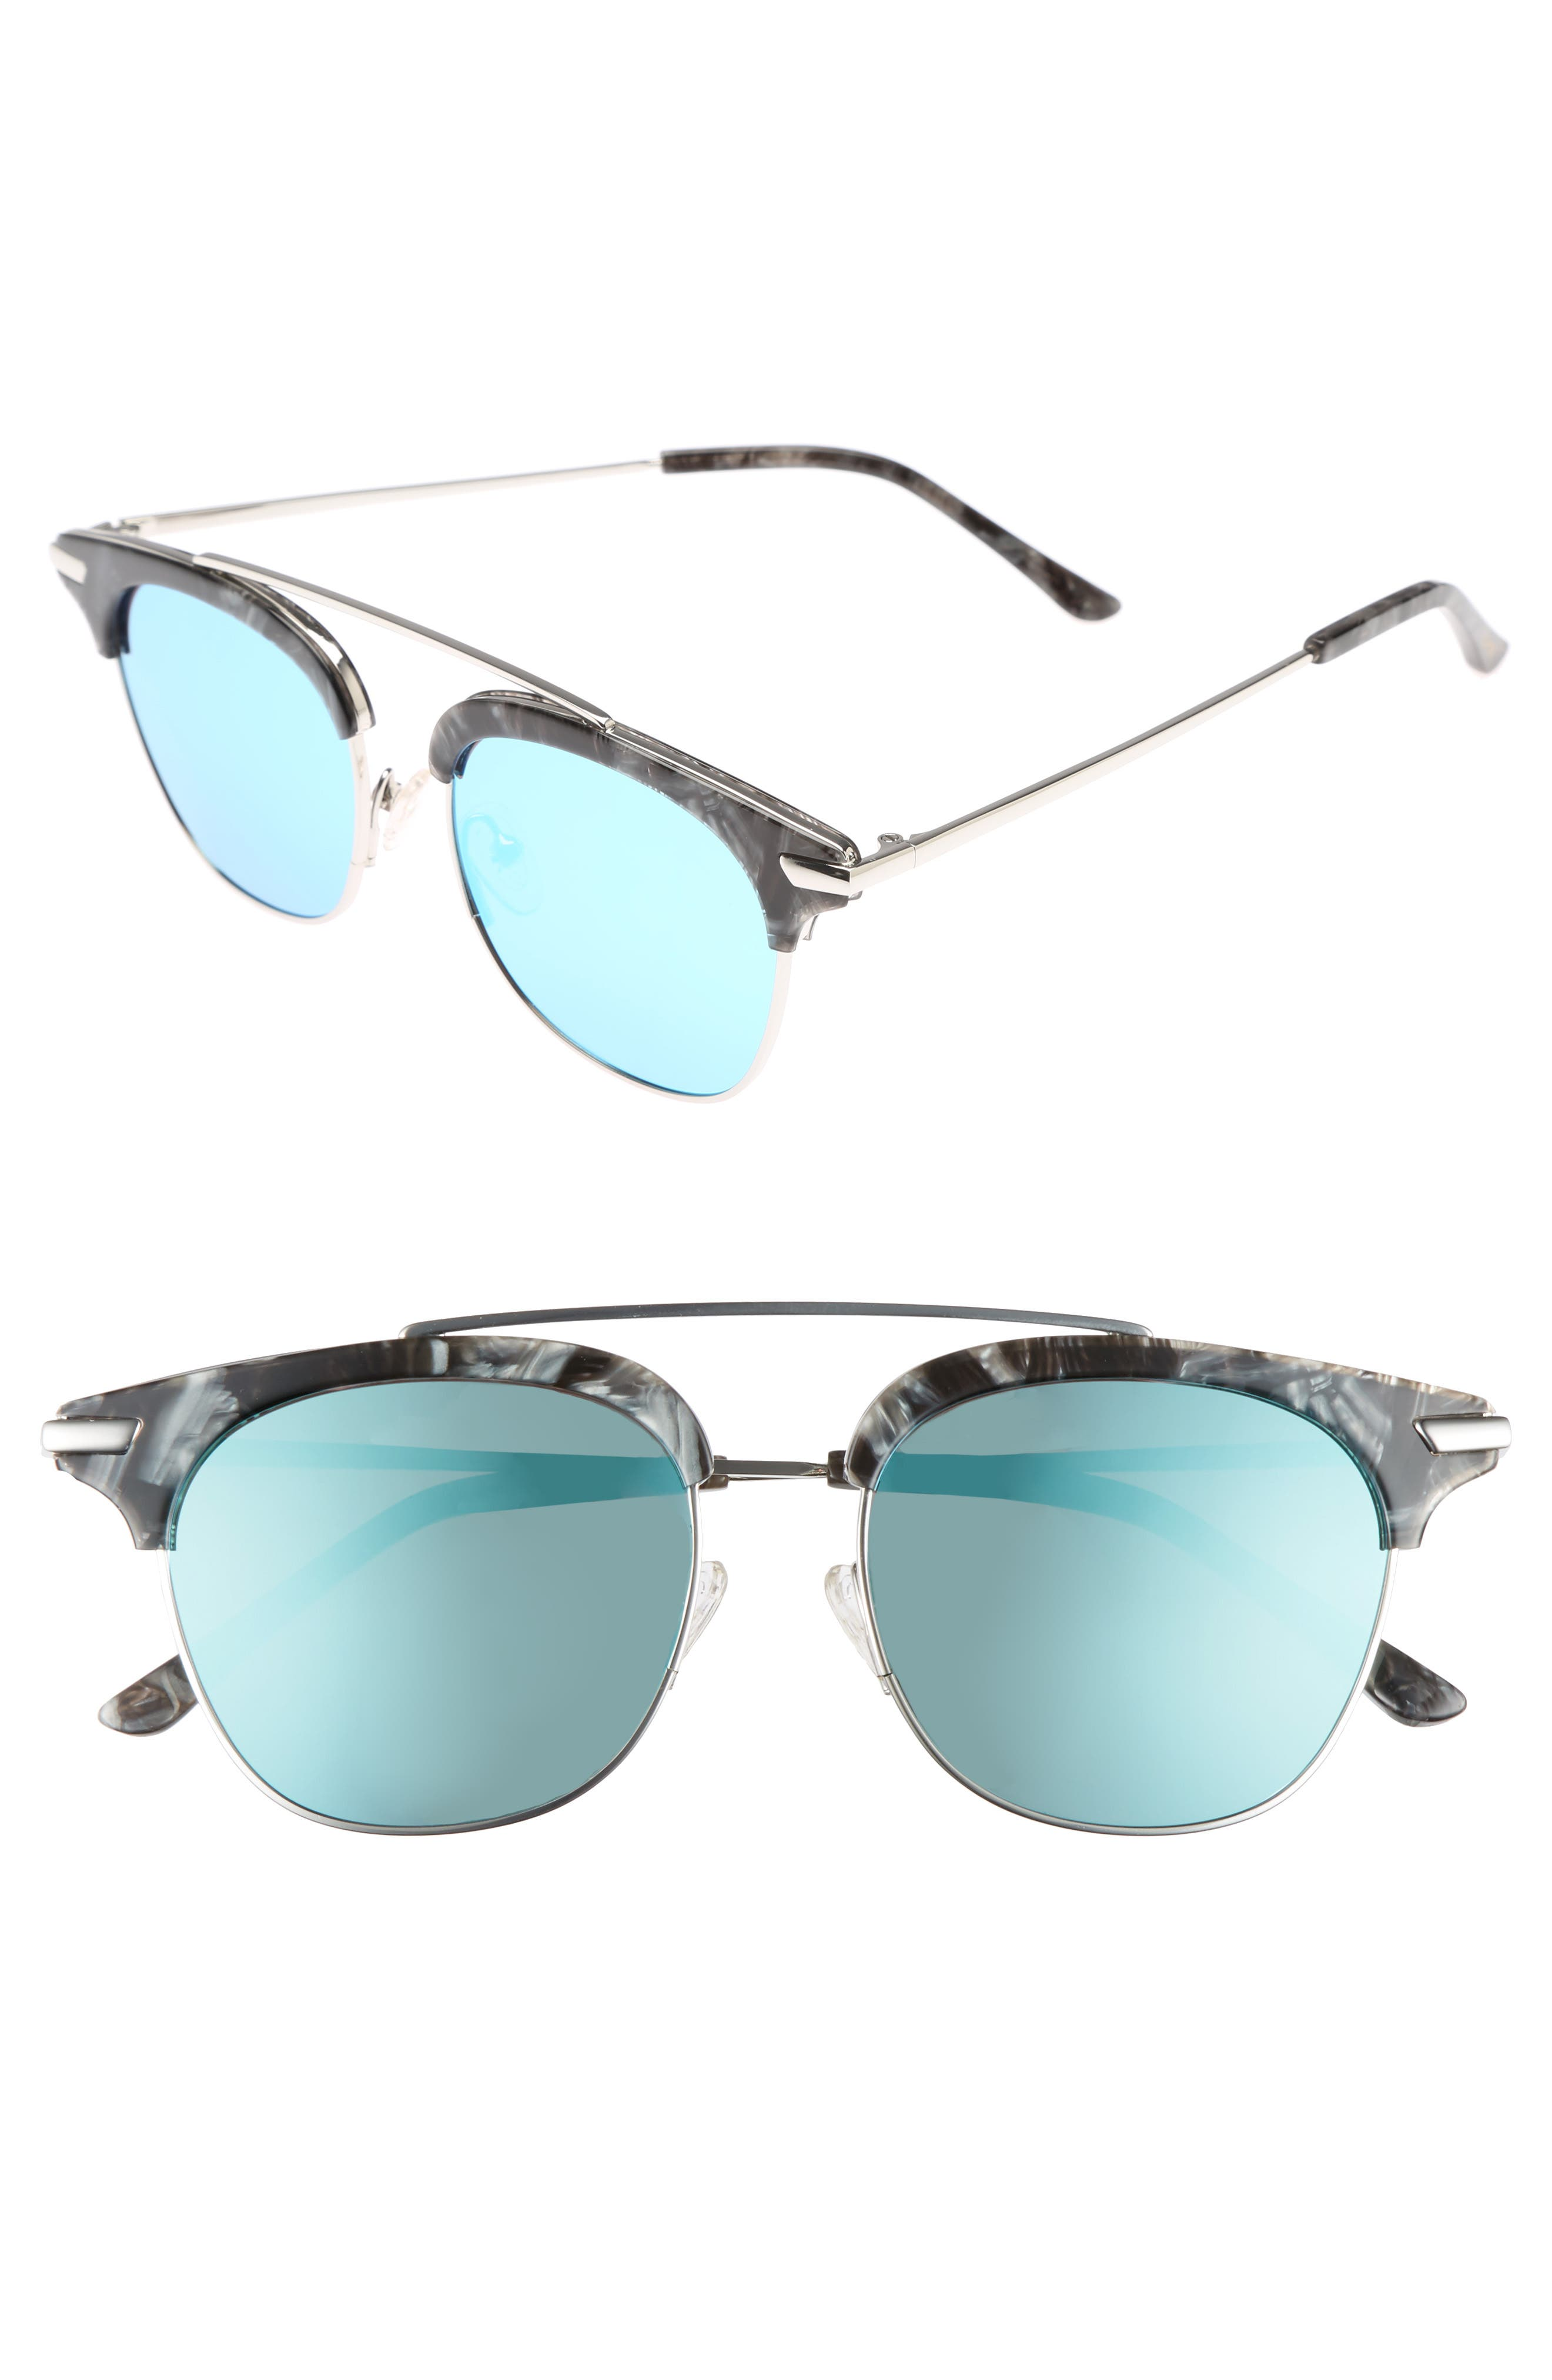 Alternate Image 1 Selected - Bonnie Clyde Midway 51mm Polarized Brow Bar Sunglasses